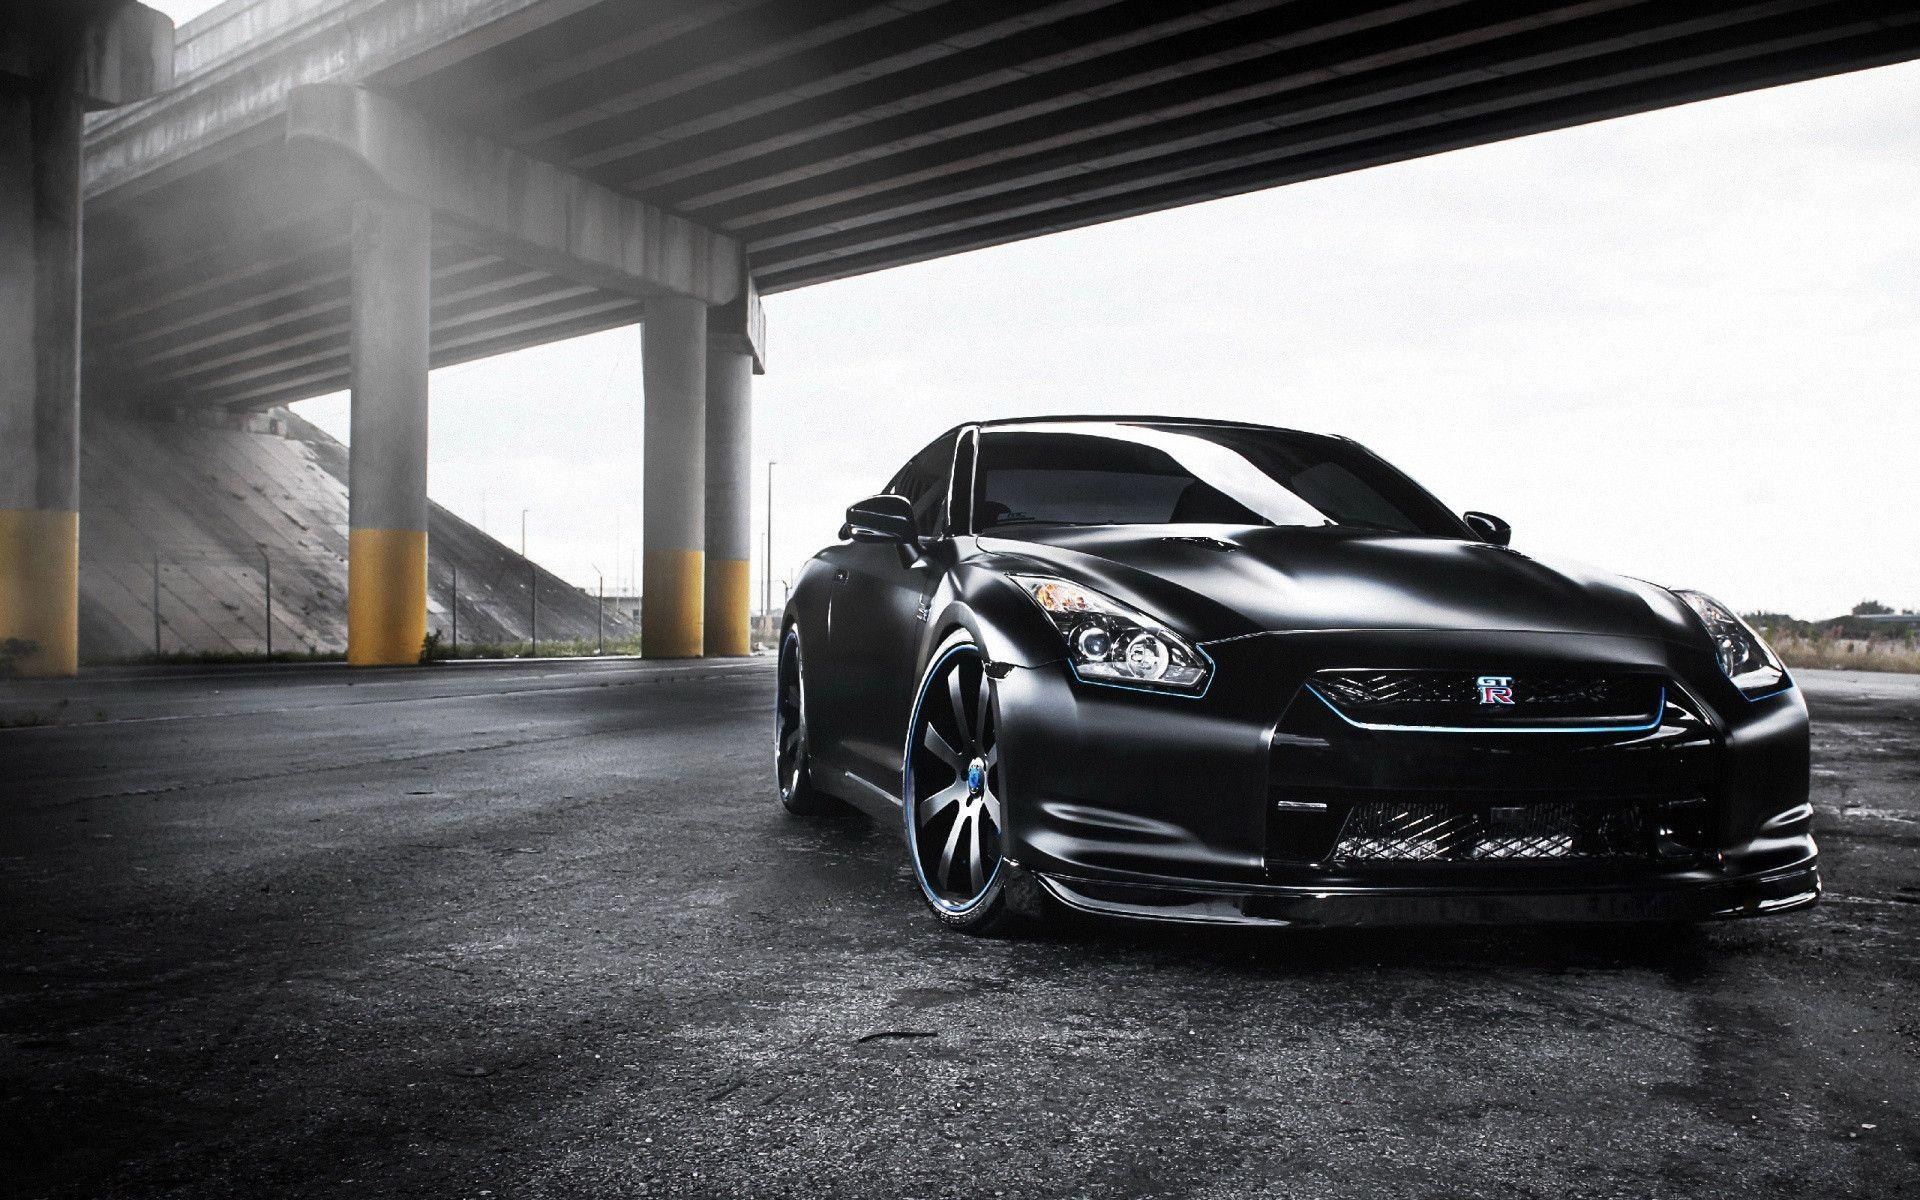 2015 Nissan GT-R Black Picture Wallpaper #9517 Nissan Car ...